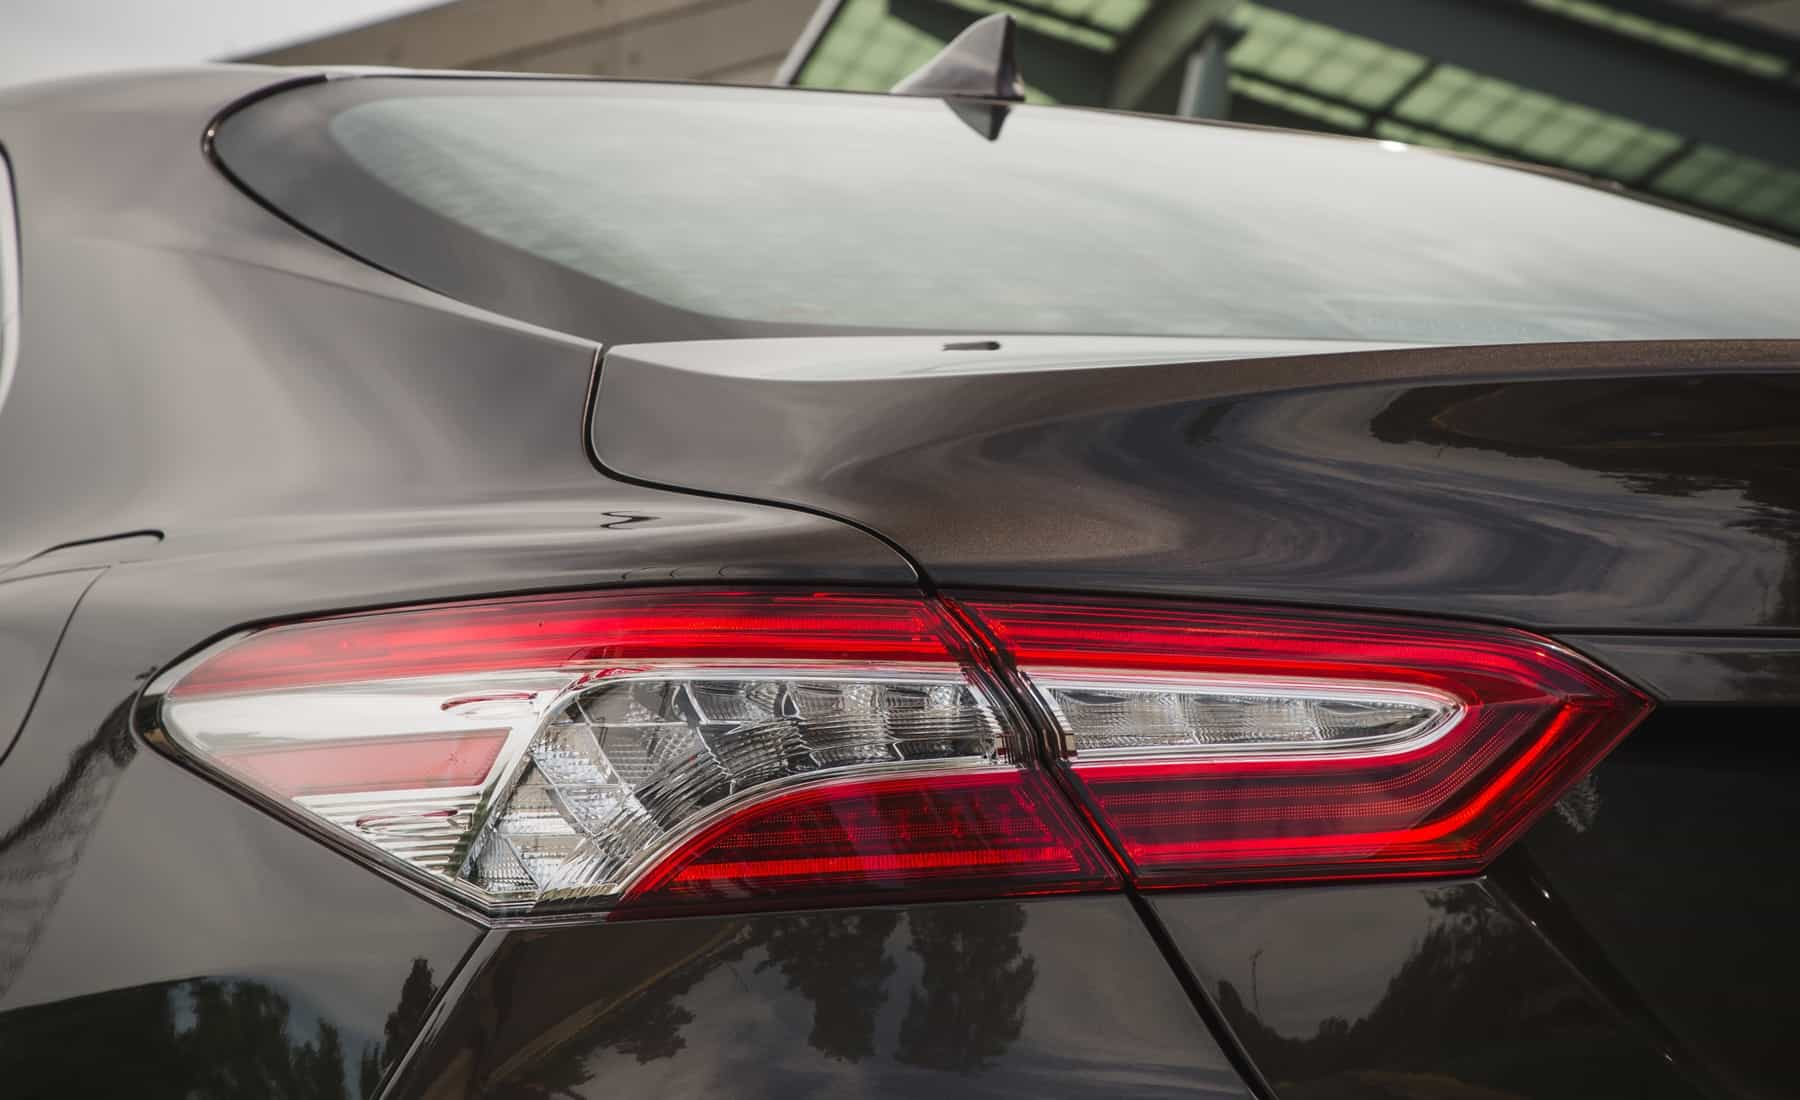 2018 Toyota Camry Hybrid XLE Exterior View Taillight (Photo 14 of 41)